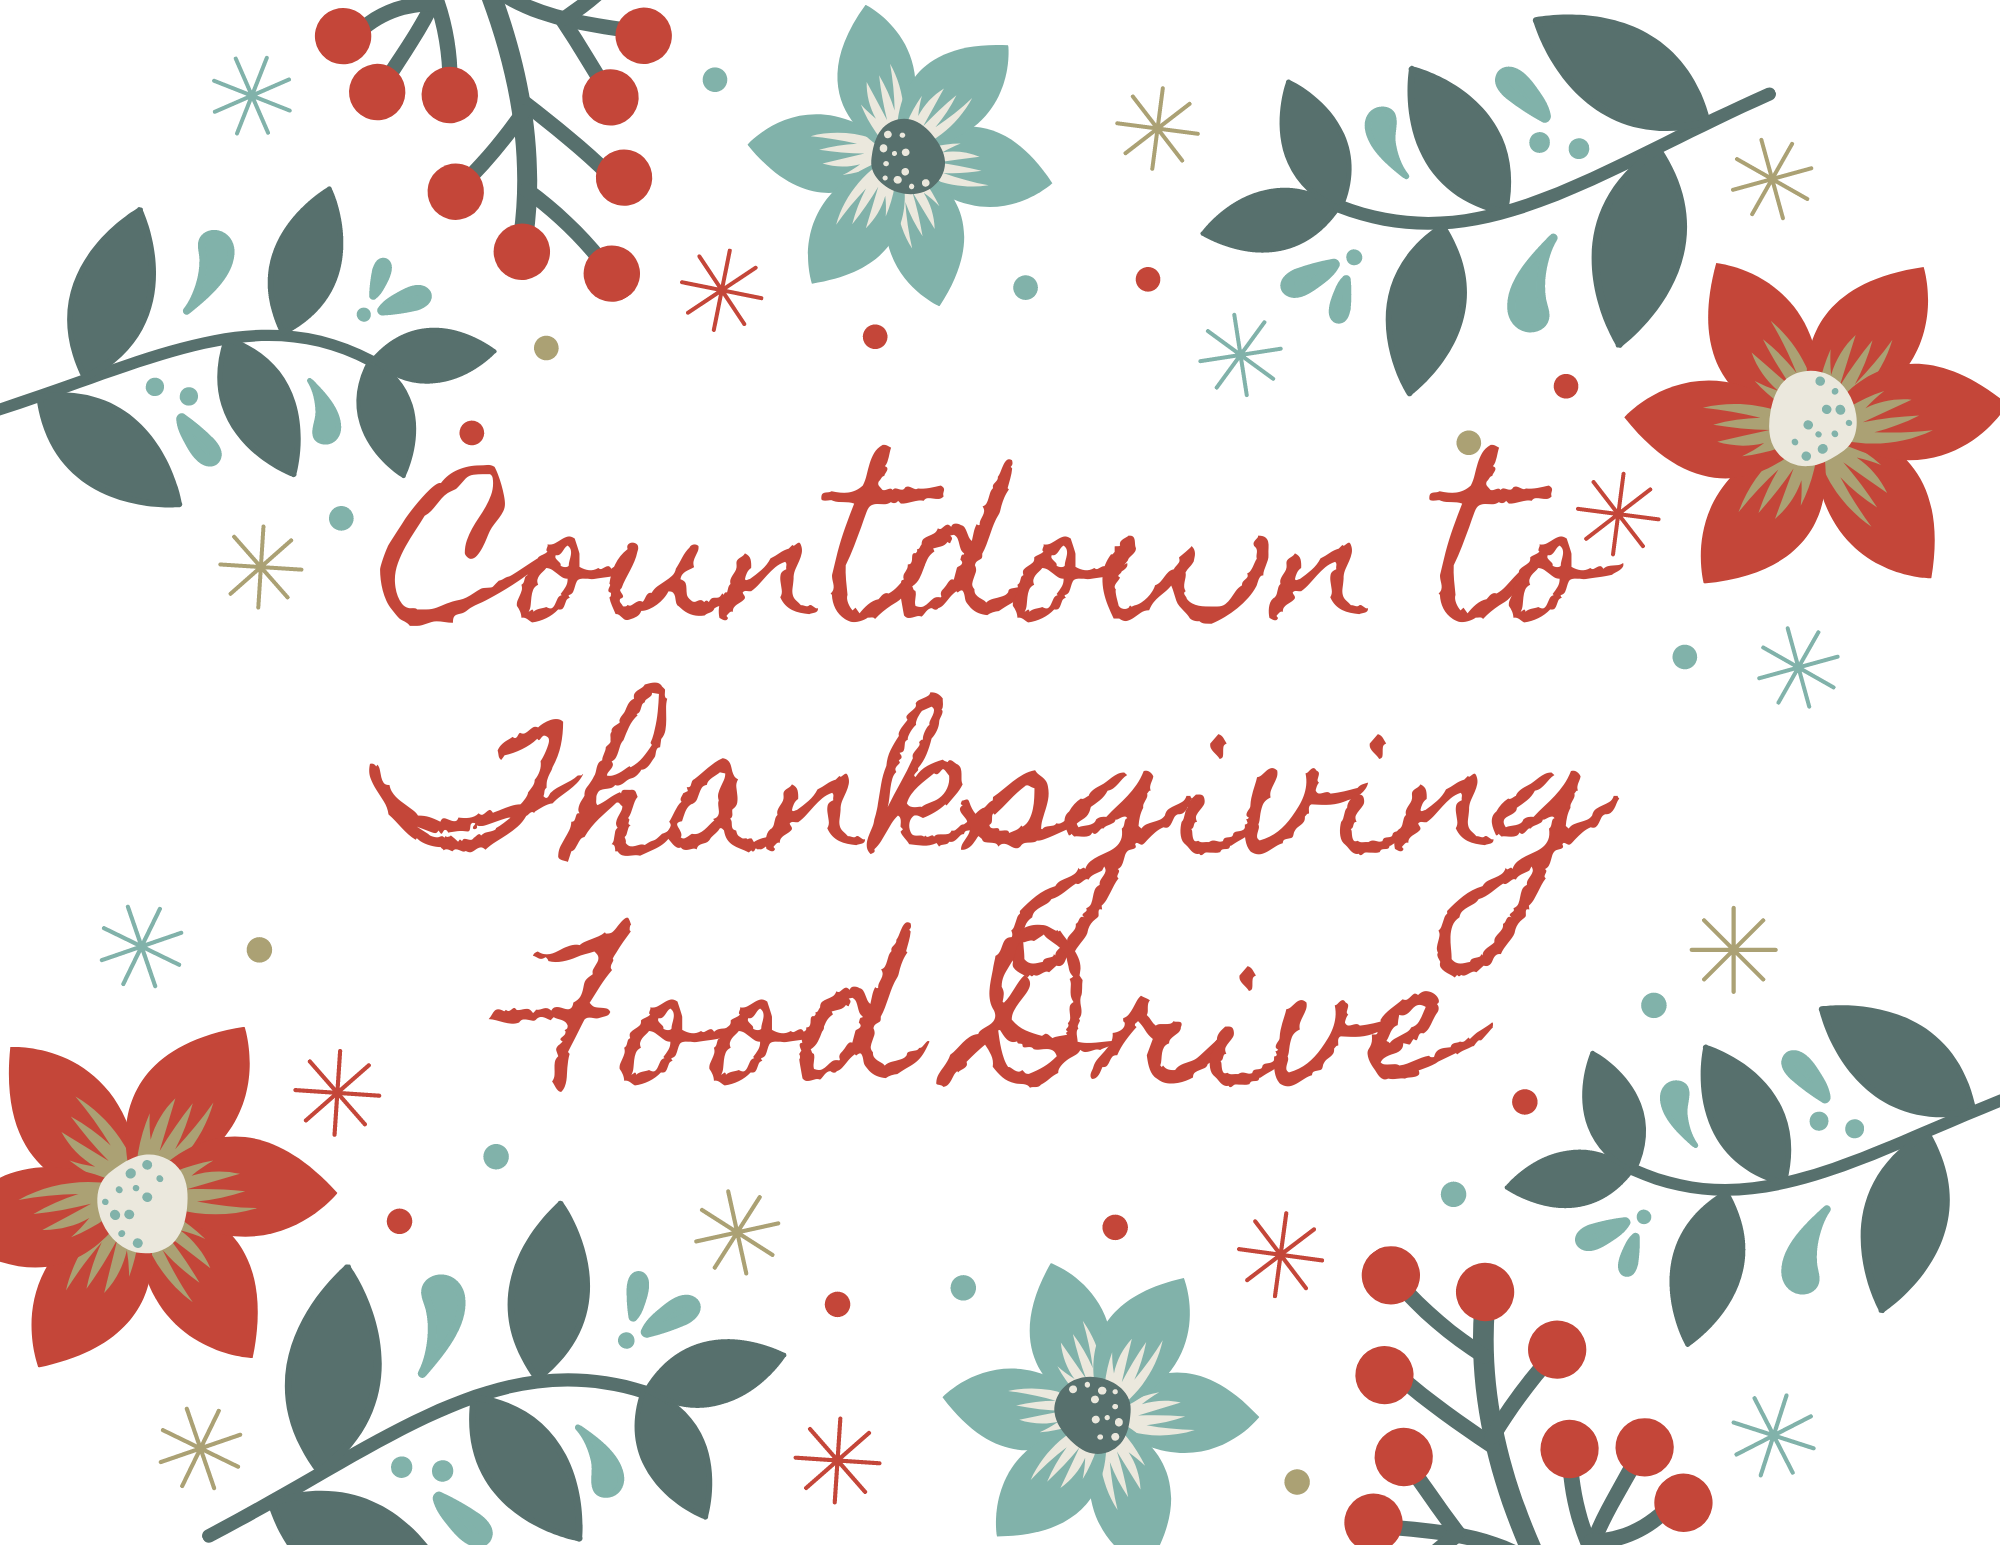 Countdown to Thanksgiving Food Drive